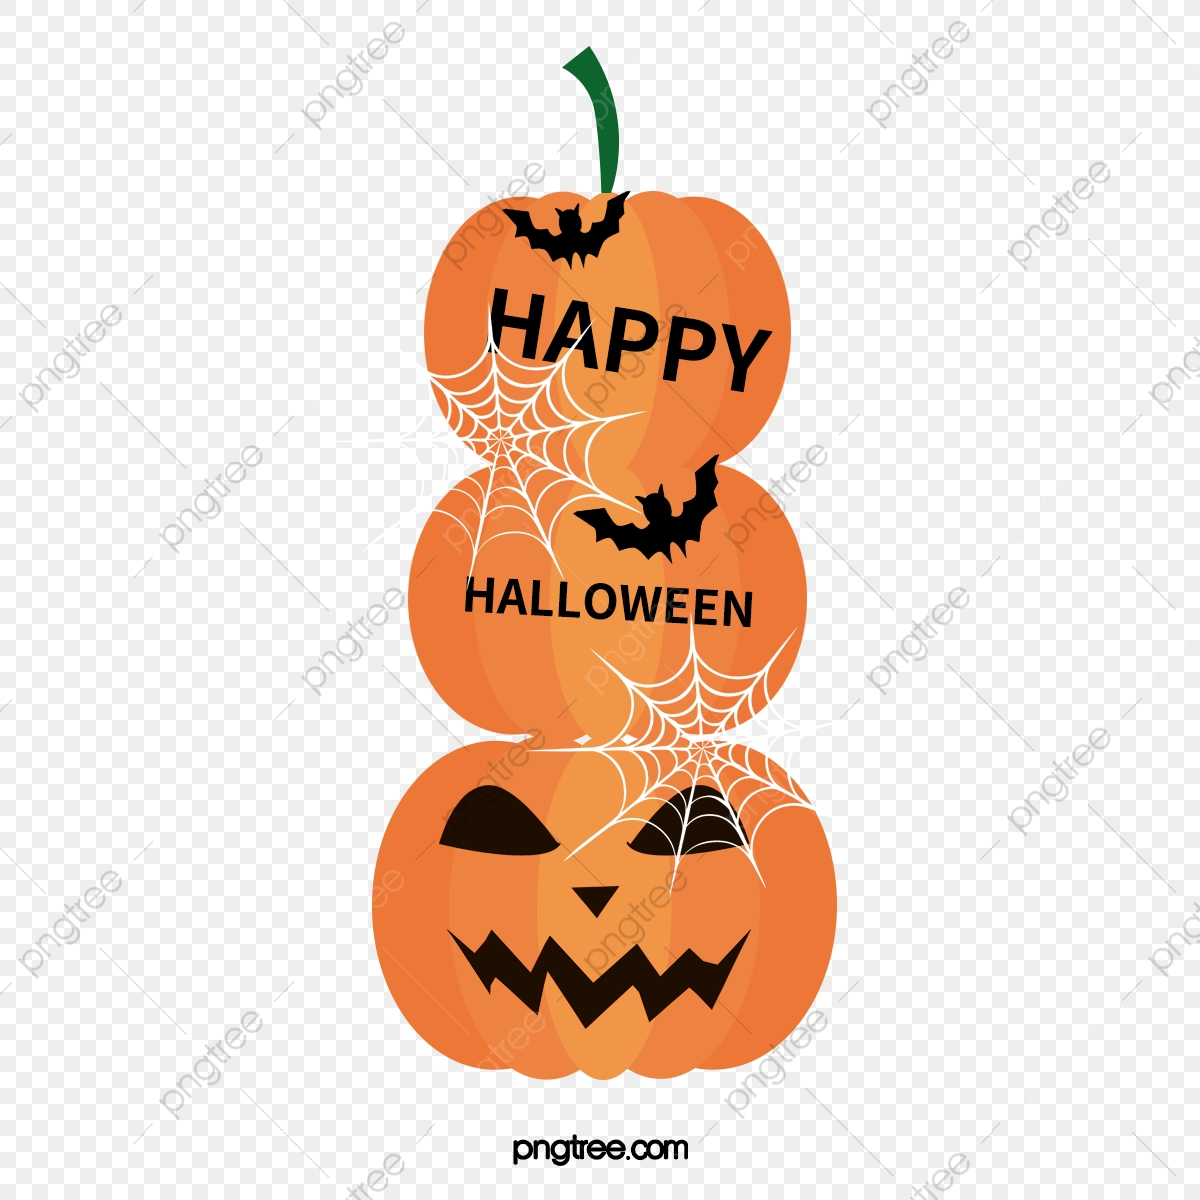 Happy Halloween Halloween Clipart Pumpkin Cartoon Pumpkin Png Transparent Clipart Image And Psd File For Free Download